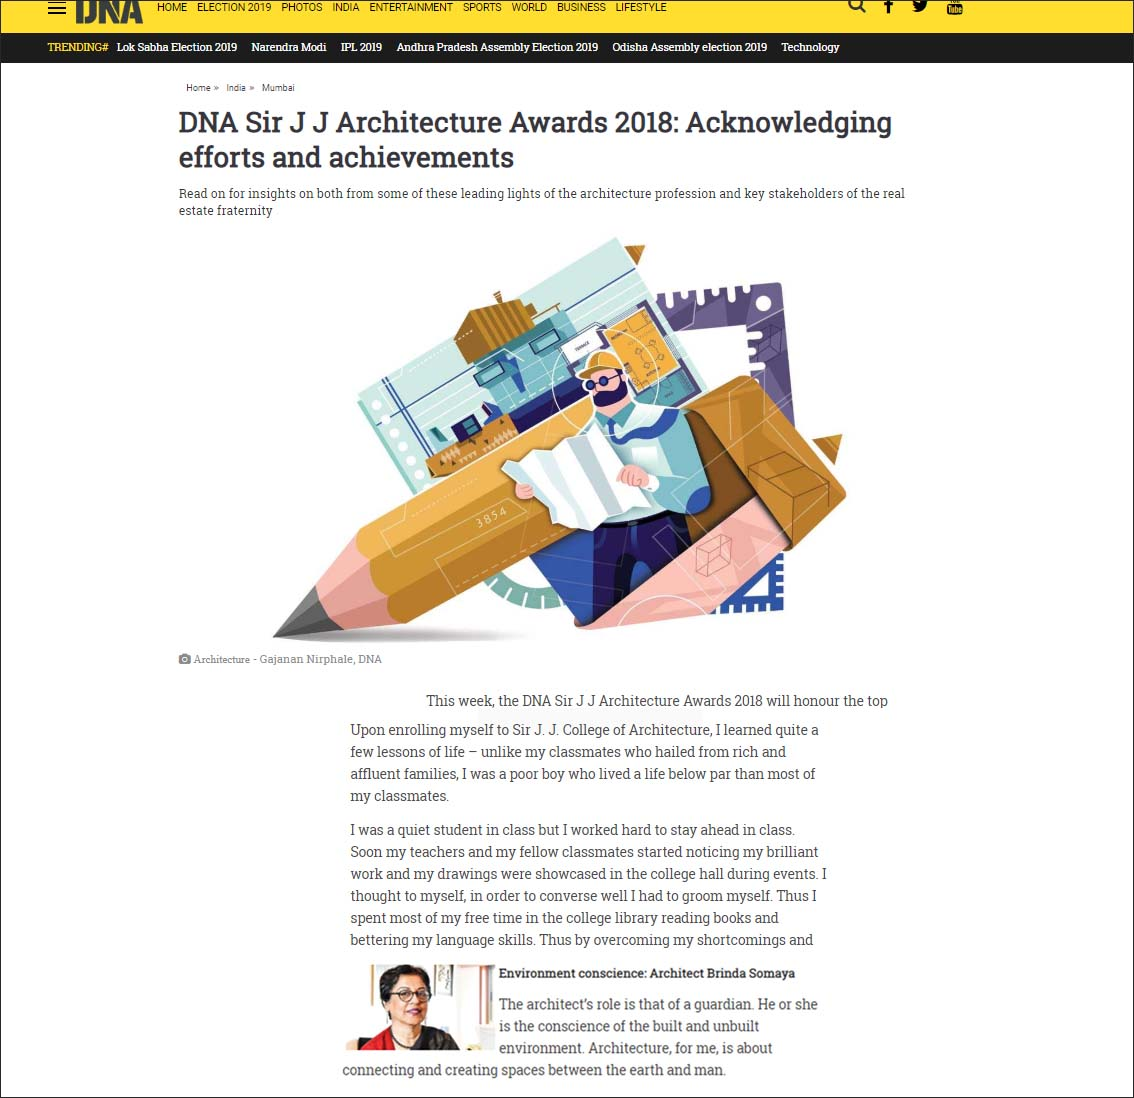 Environment conscience: Architect Brinda Somaya, DNA sir JJ Architecture Awards 2018: Acknowledging efforts and achievements- DNA 2019